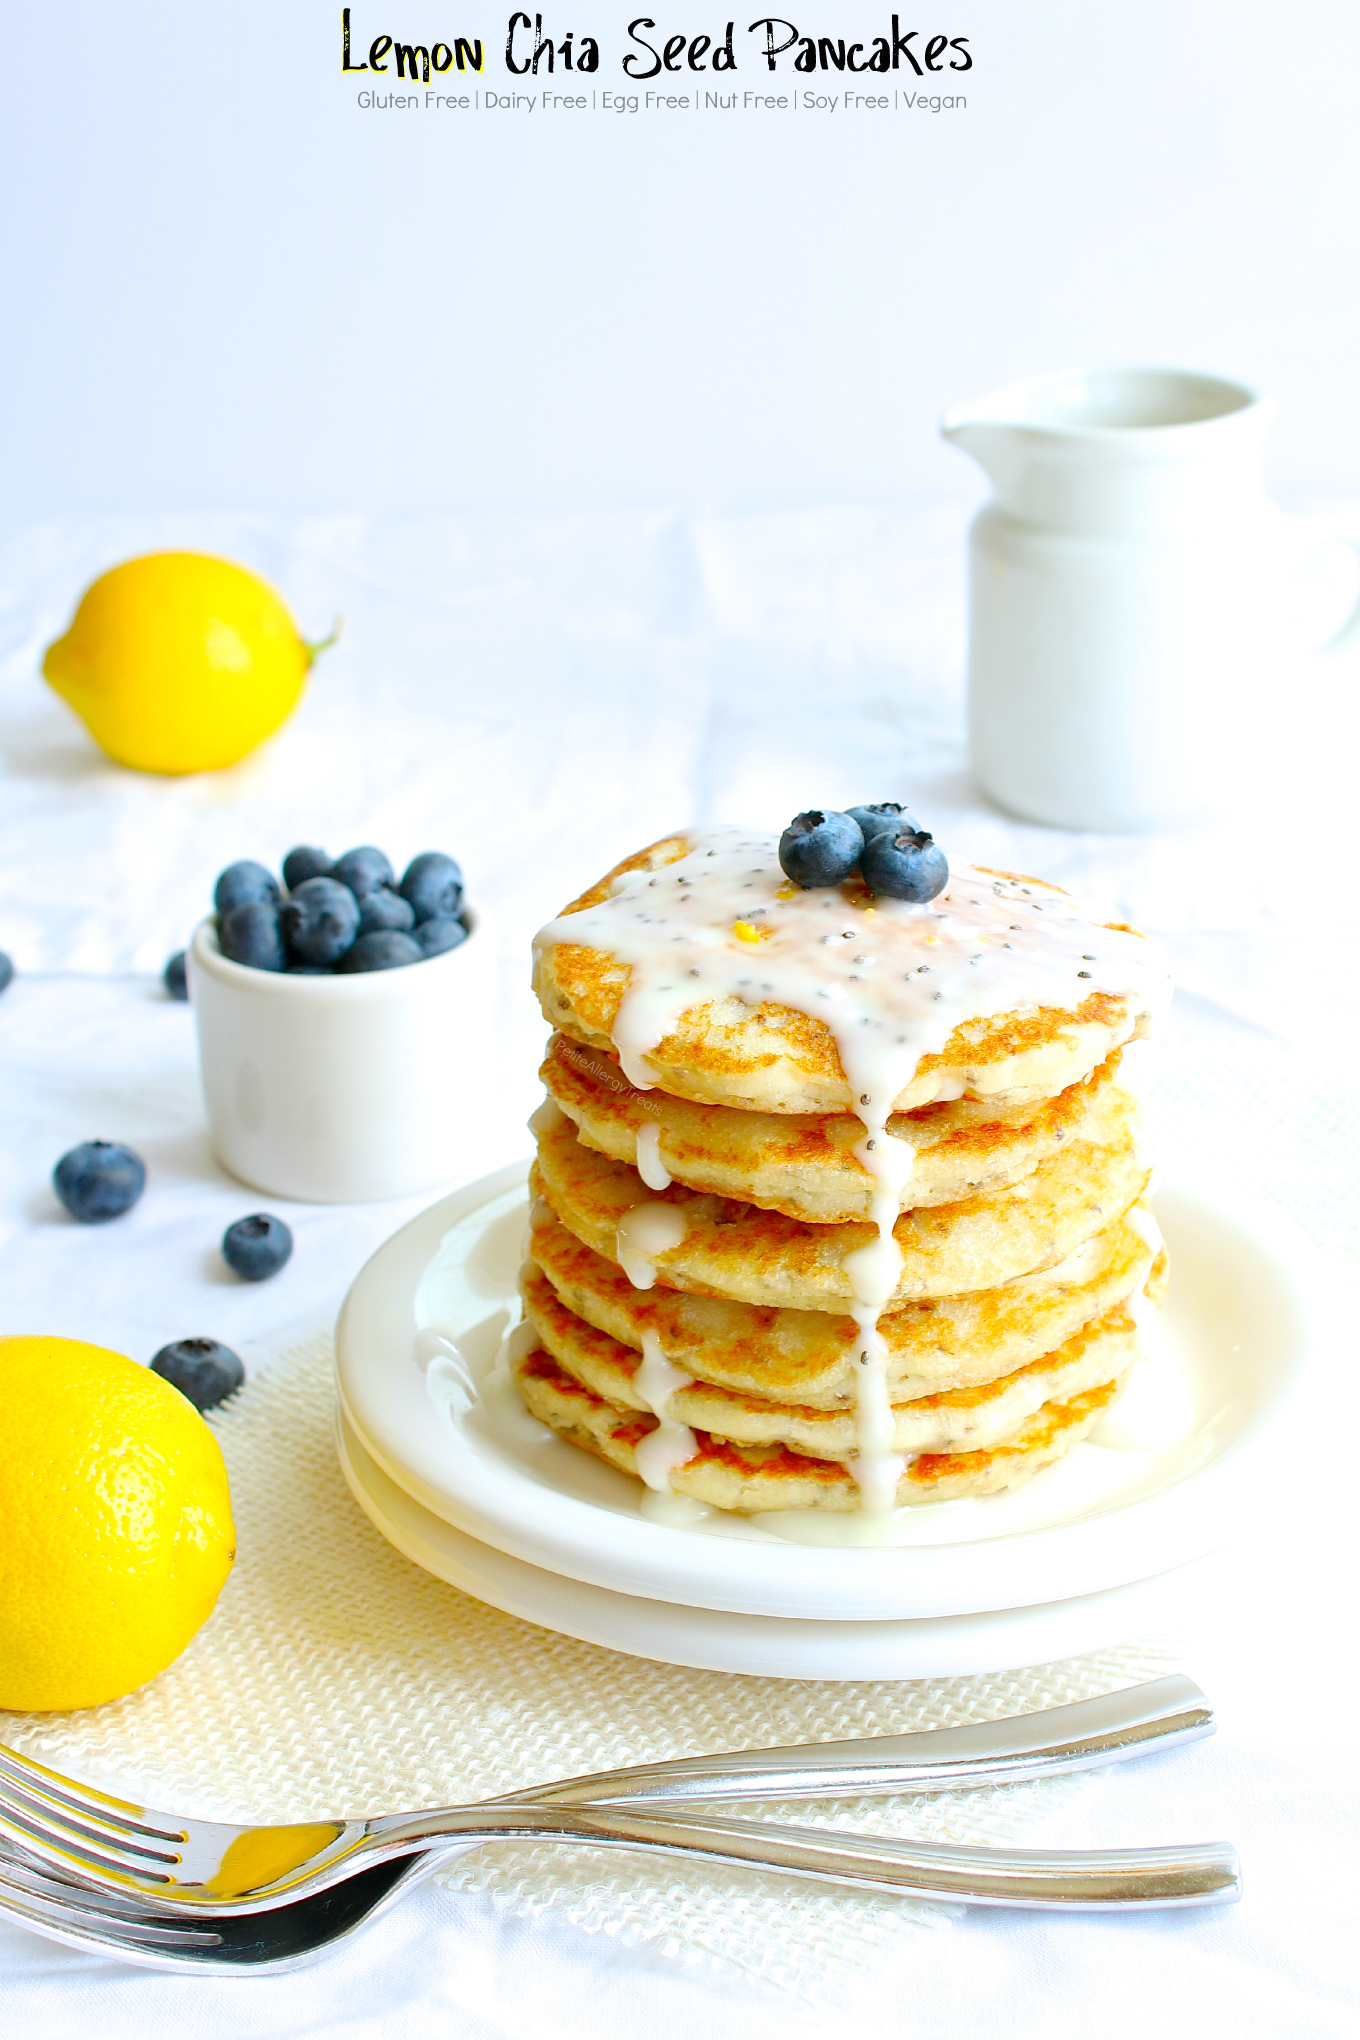 Gluten Free Lemon Chia Seed Pancakes (dairy free Vegan) recipe- Easy gluten free pancakes, like lemon poppy seed pancakes but better. Super food allergy friendly too-egg free, dairy free and nut free. #glutenfree #dairyfree #eggfree